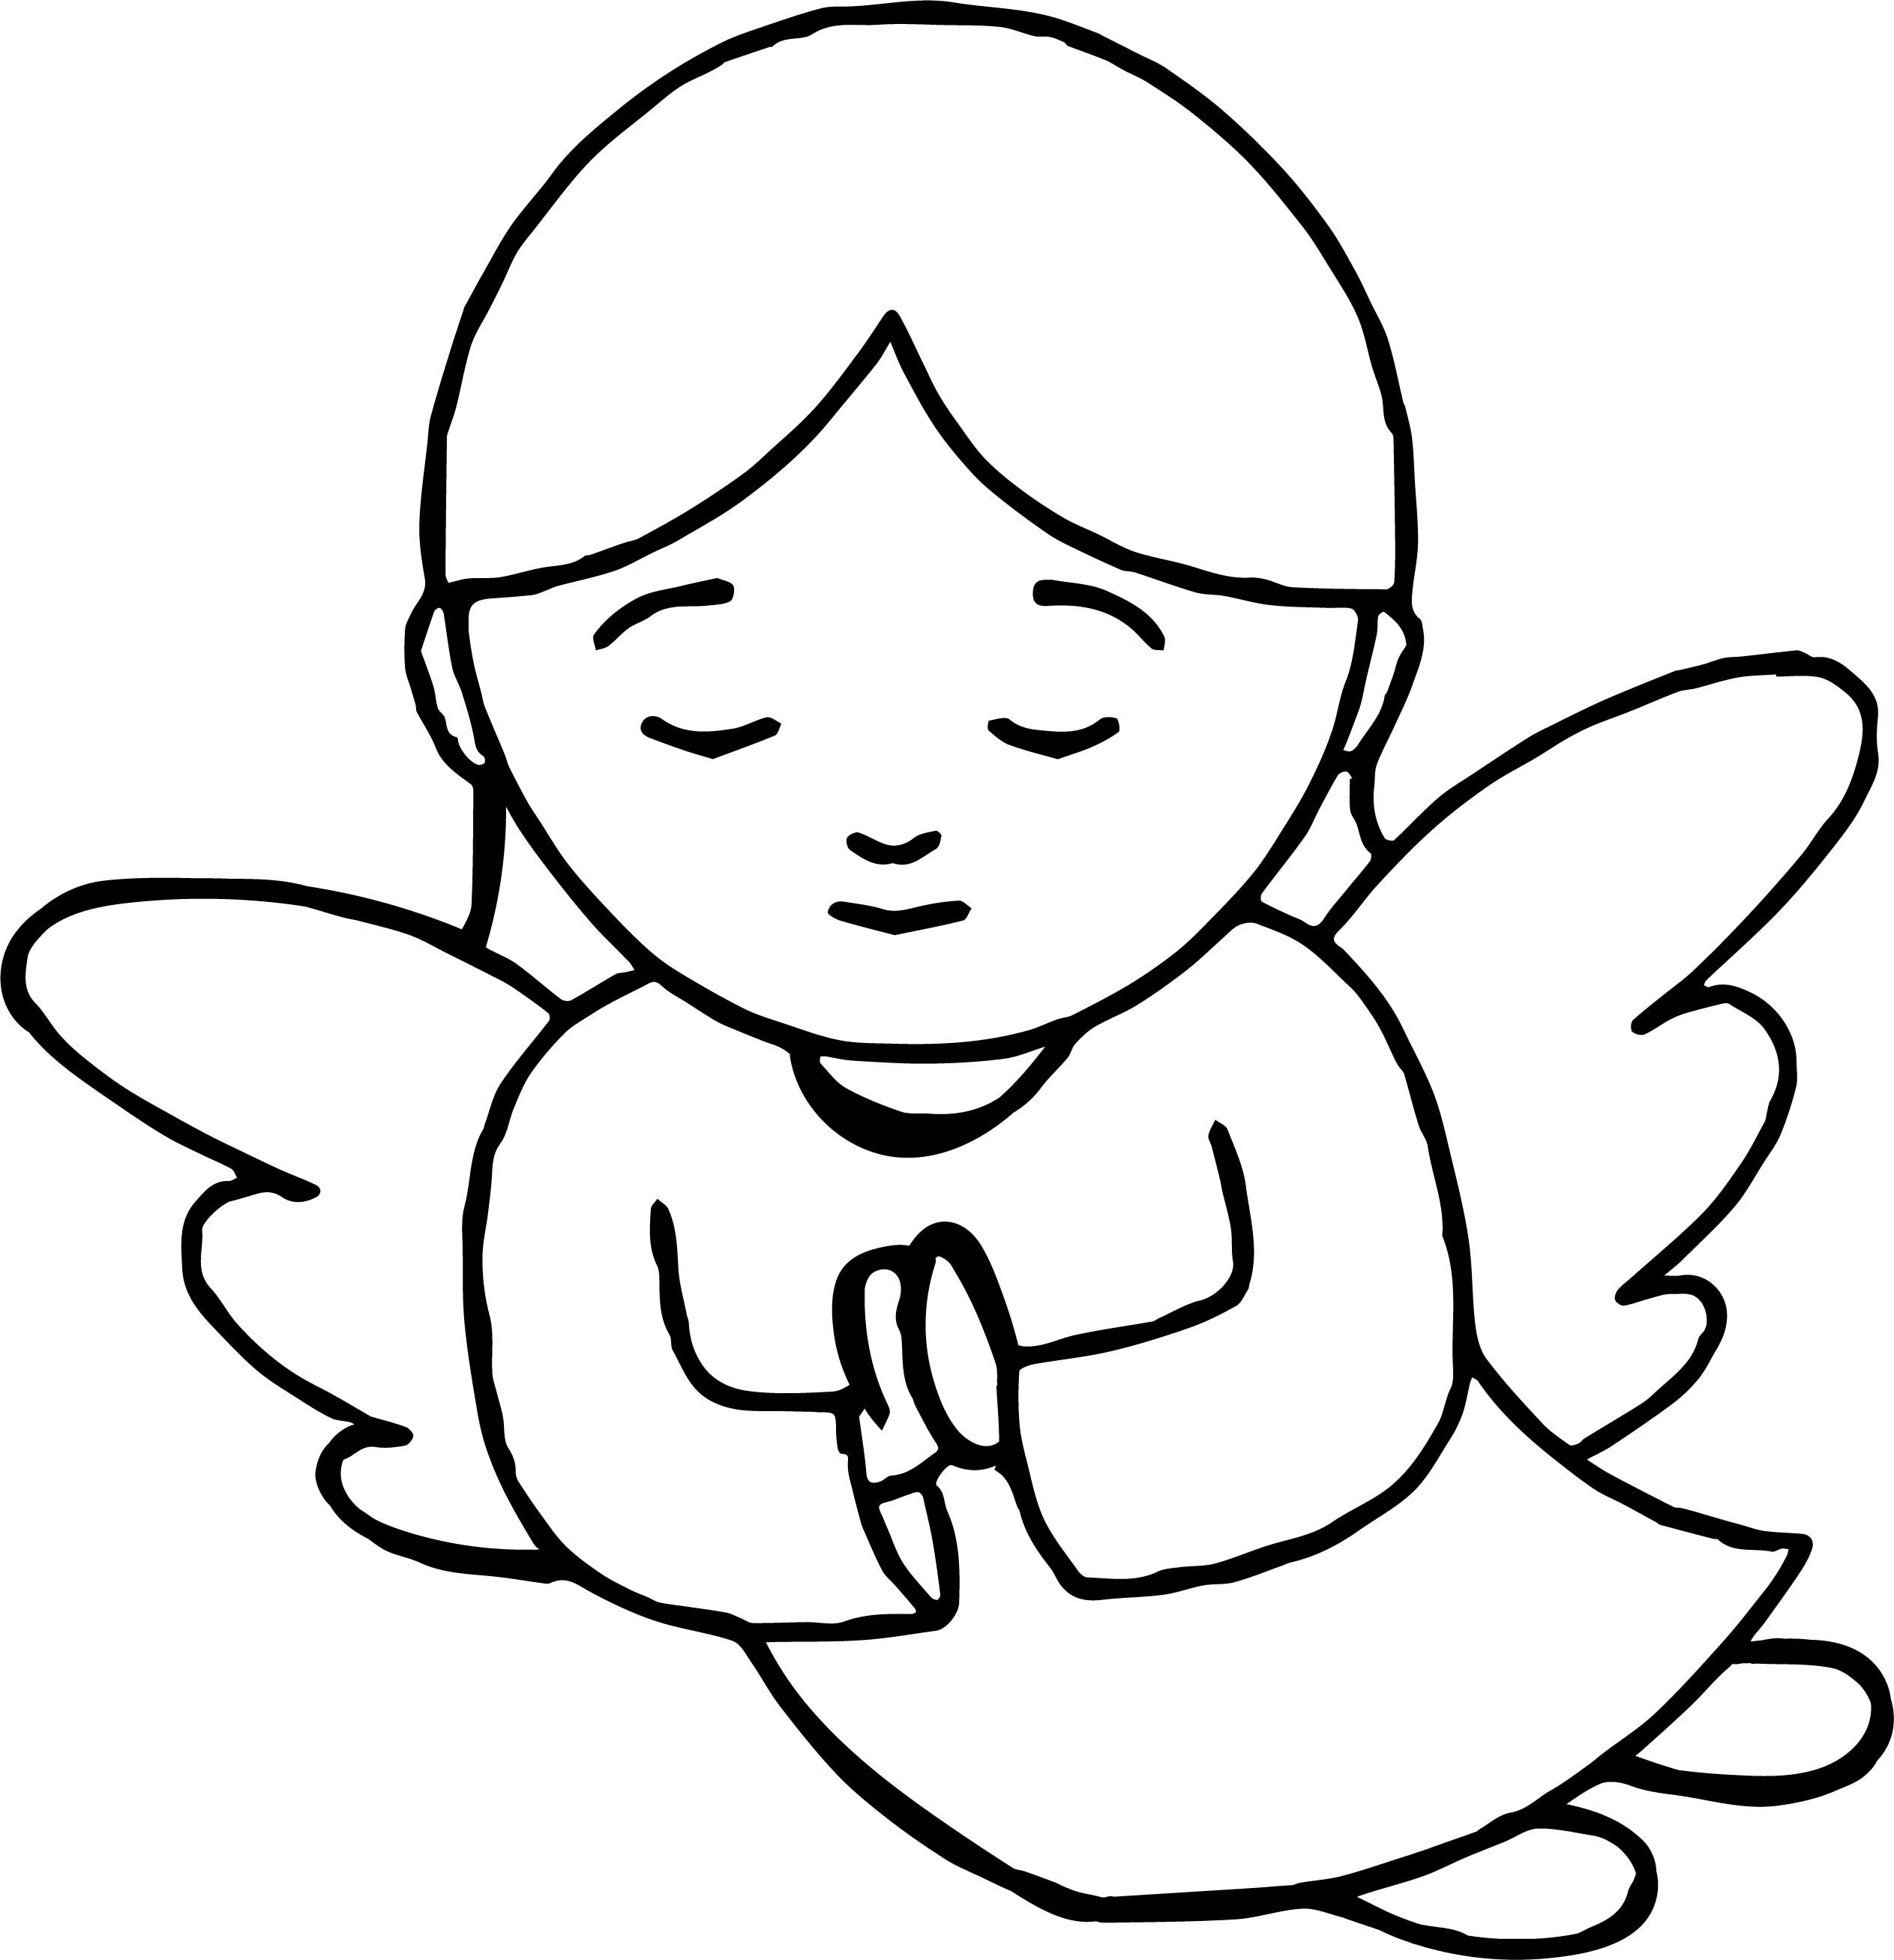 Cool Angel With Halo Praying Coloring Page